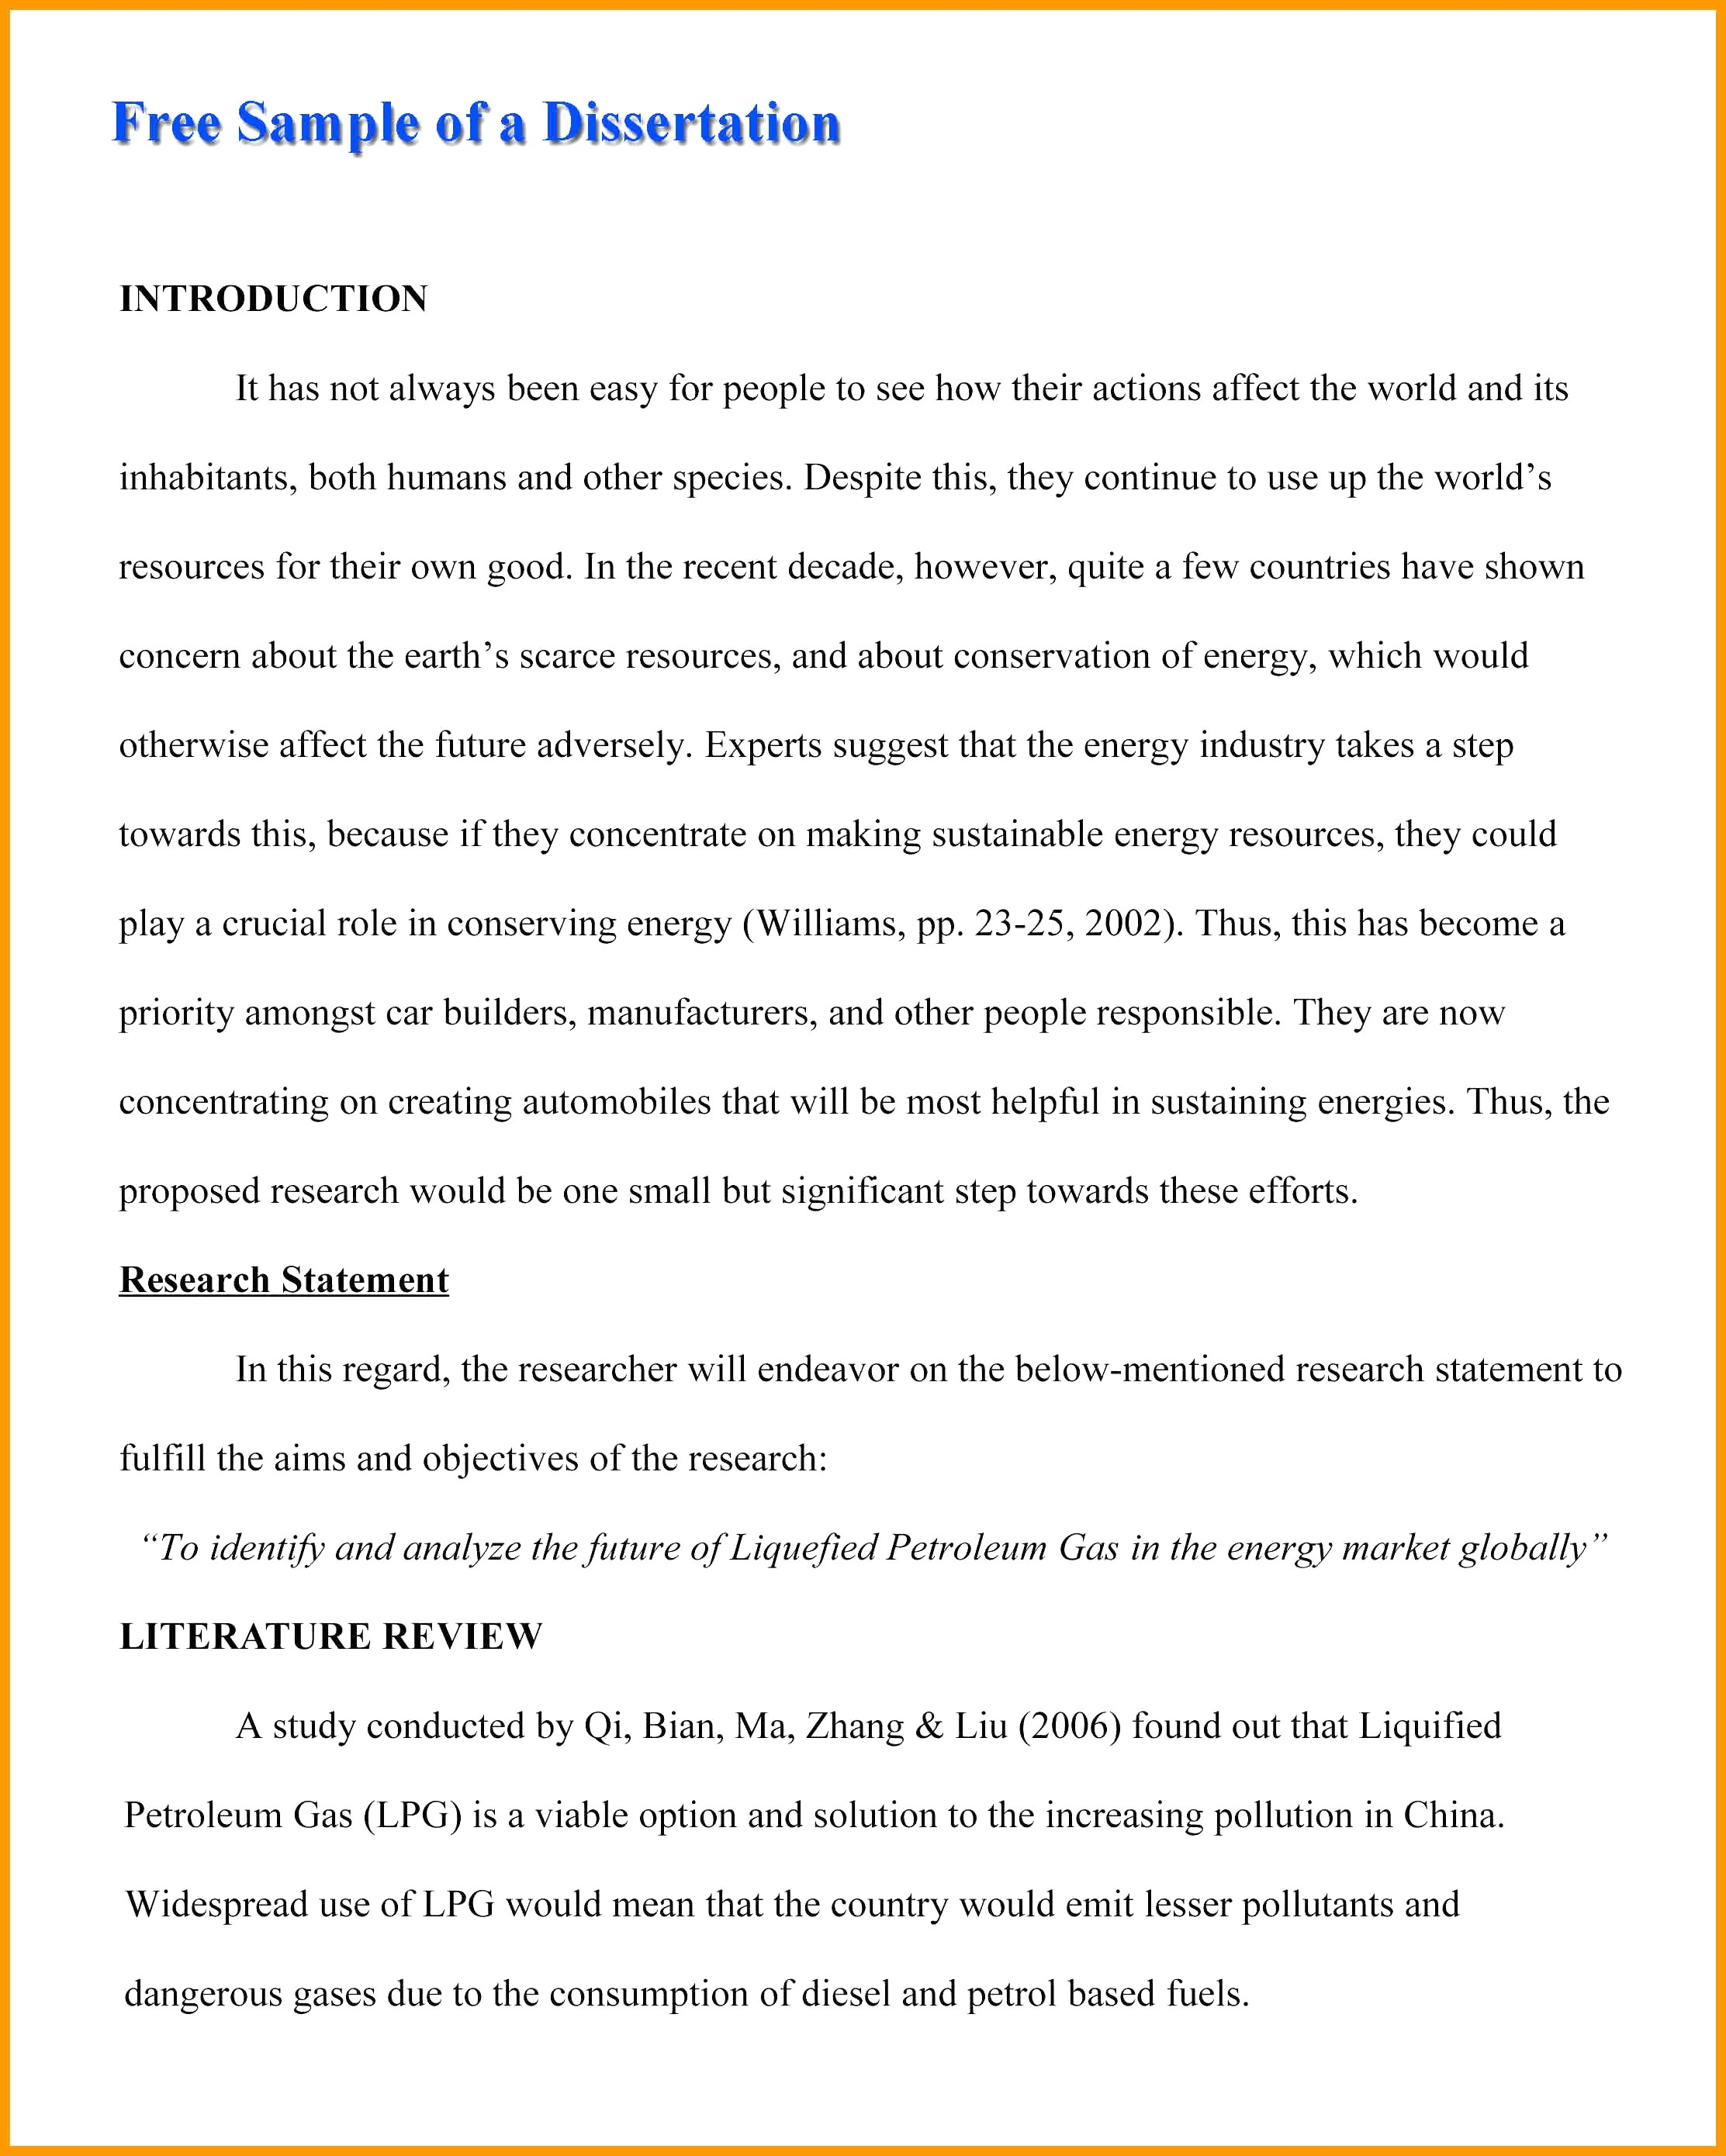 004 War On Drugs Research Paper Outline Filename Books Historical Pertaining To History Essay Impressive Rubric High School Template Full